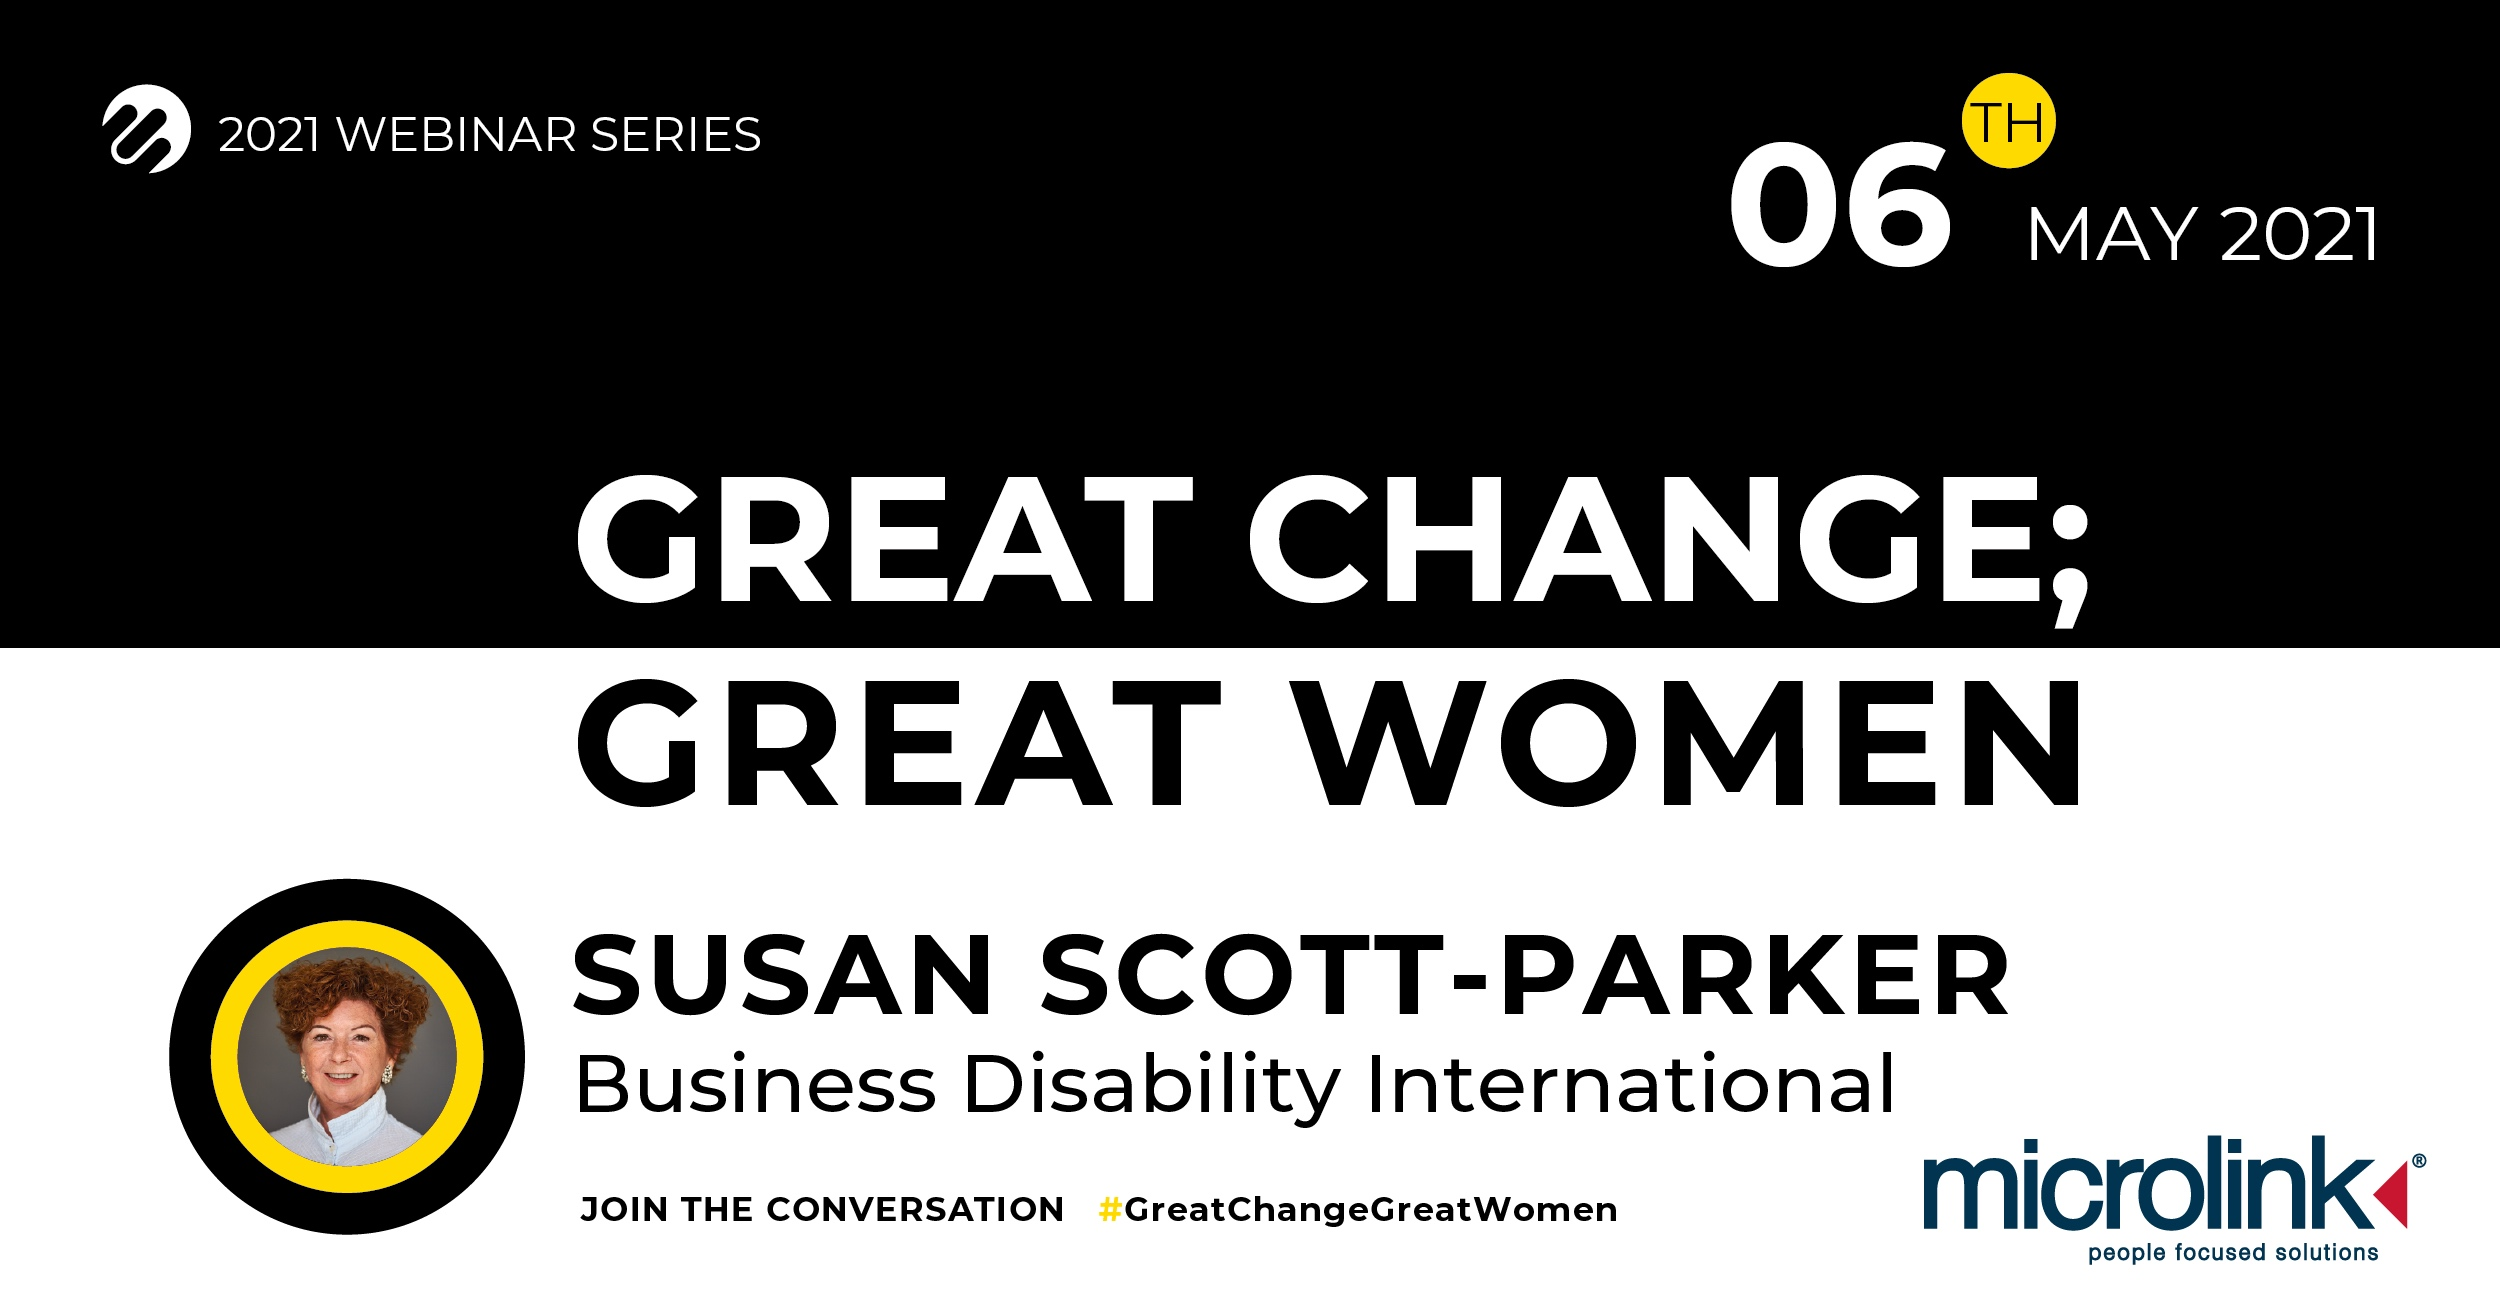 Great Change; Great Women, Microlink event with Susan Scott-Parker